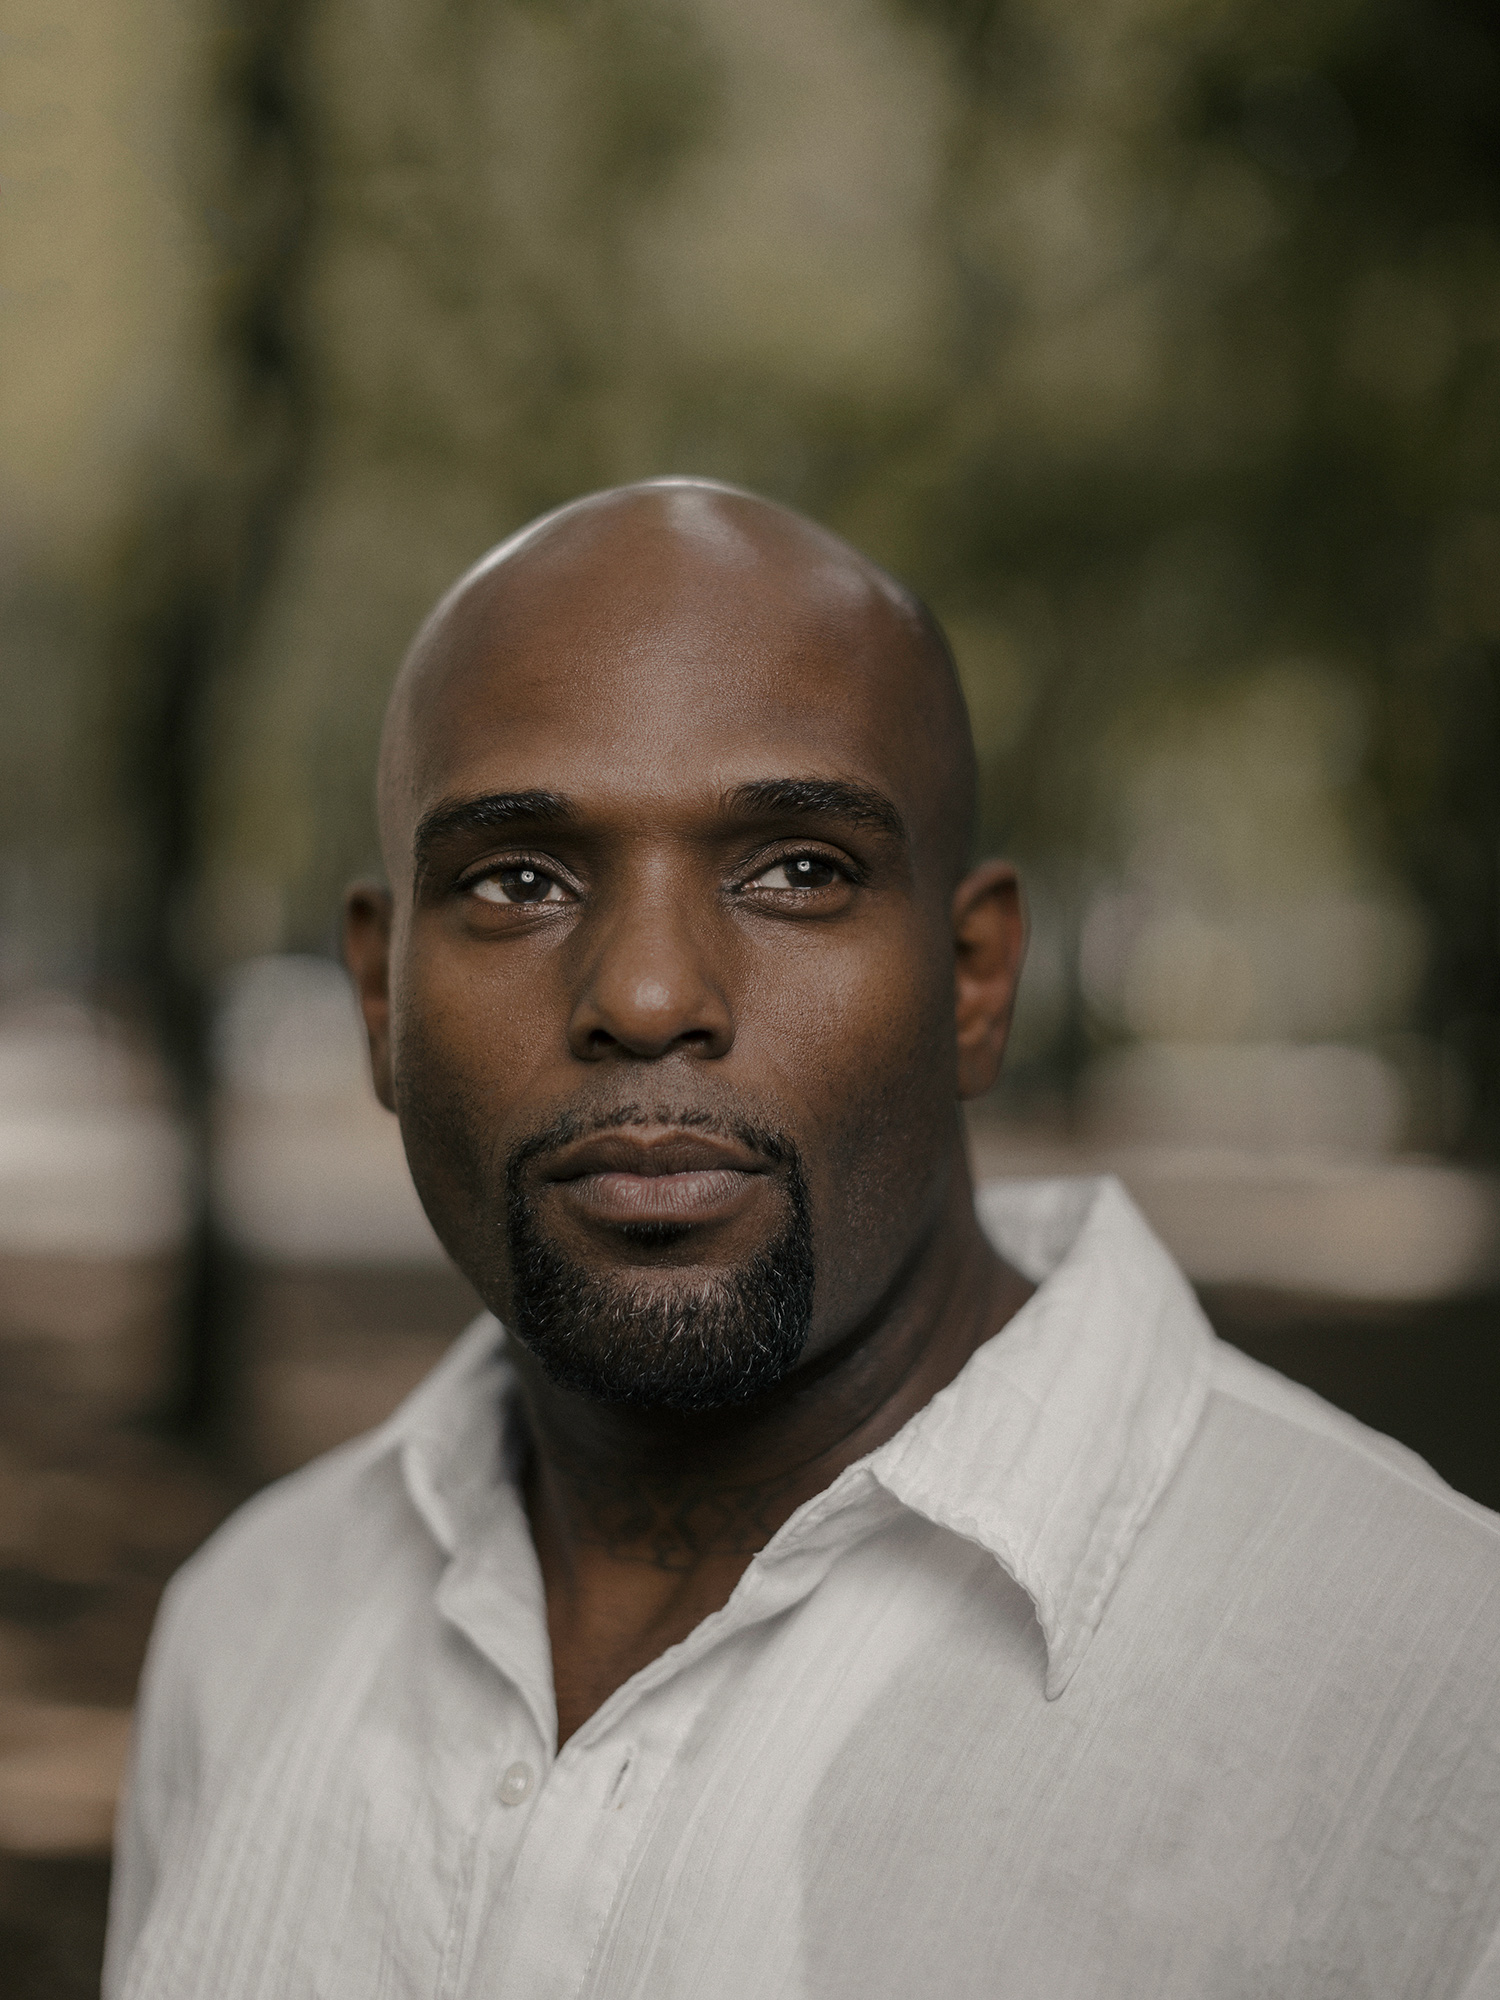 LaCurtis Jones, former NFL linebacker, photographed in The Galleria district of Houston, Texas by Houston editorial and commercial photographer, Todd Spoth.